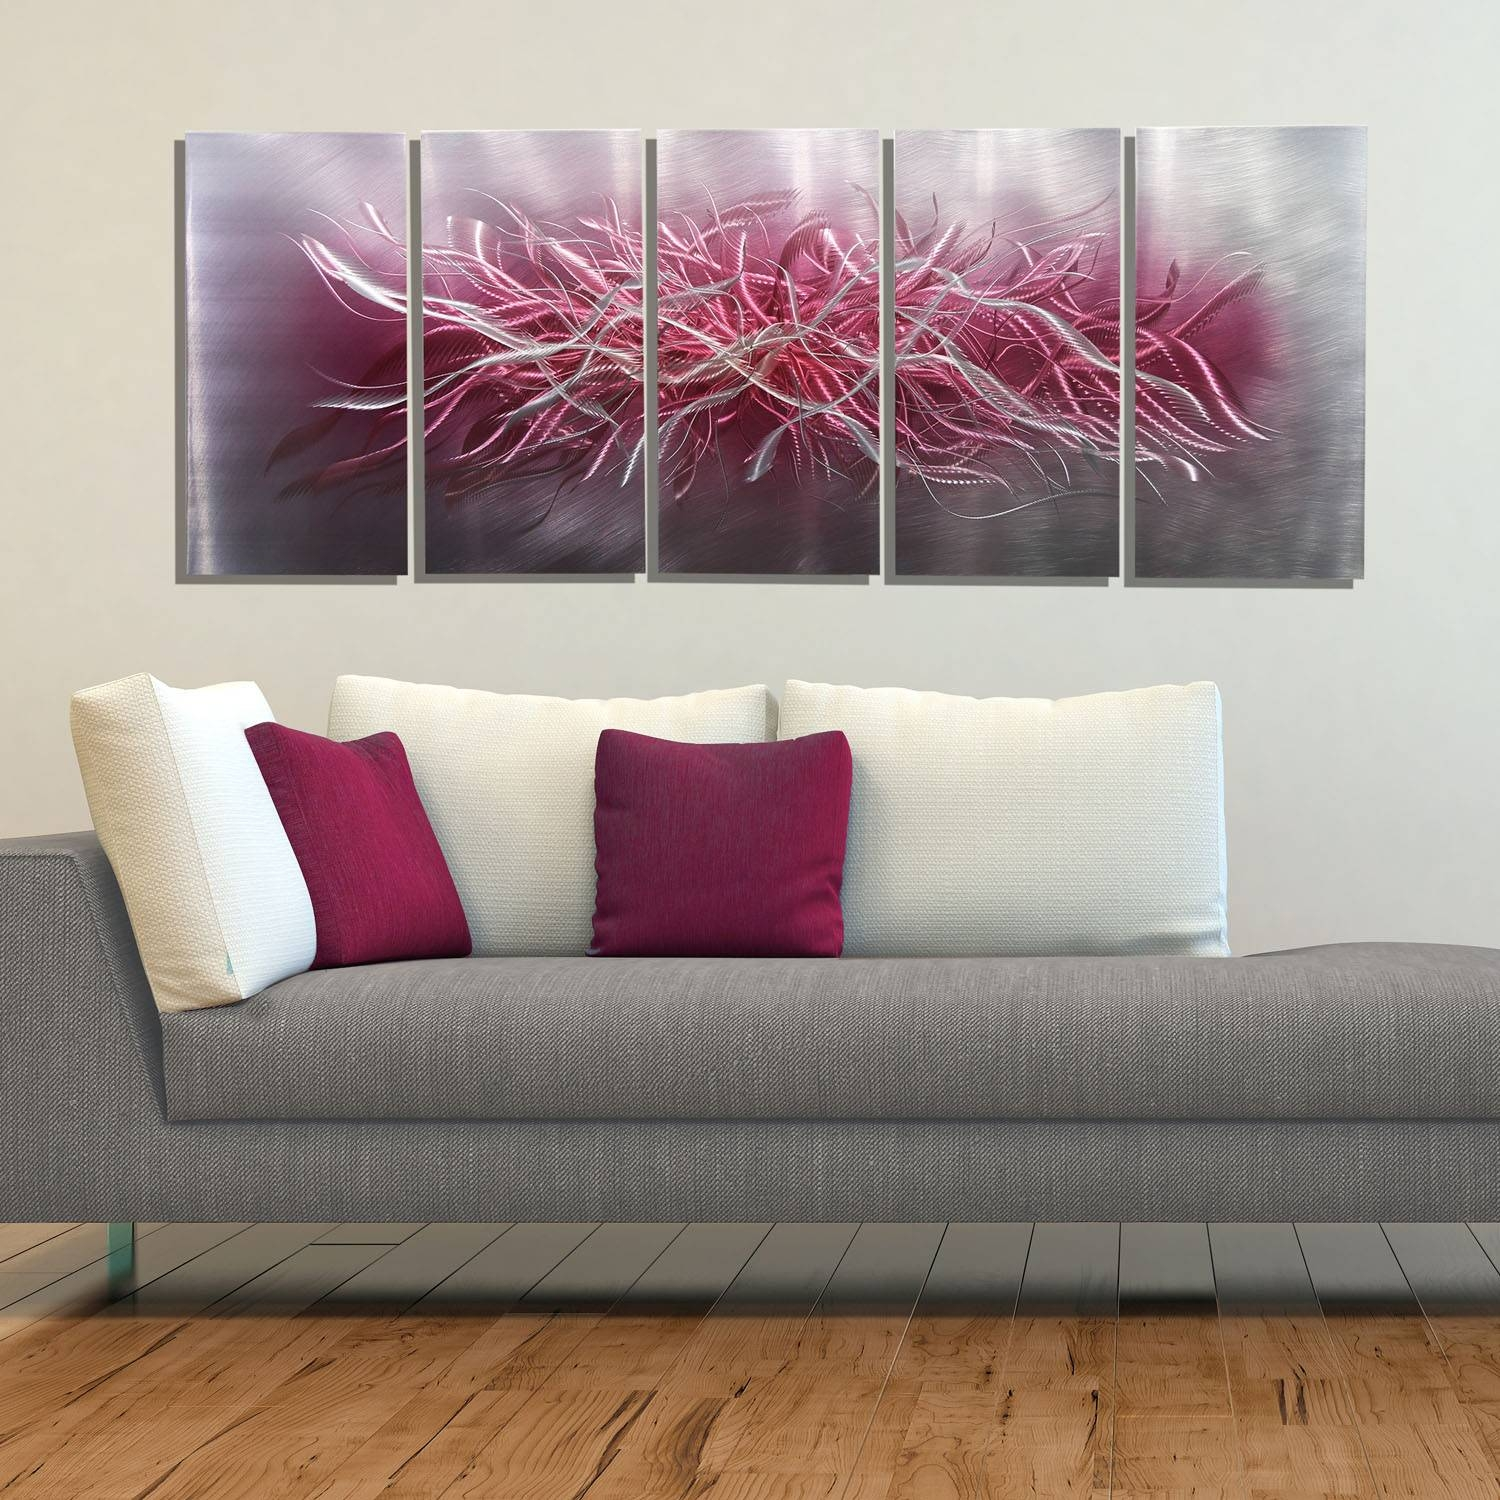 Inflorescence – Large Unique Silver & Pink Modern Metal Wall Art Intended For Newest Pink Metal Wall Art (Gallery 2 of 20)